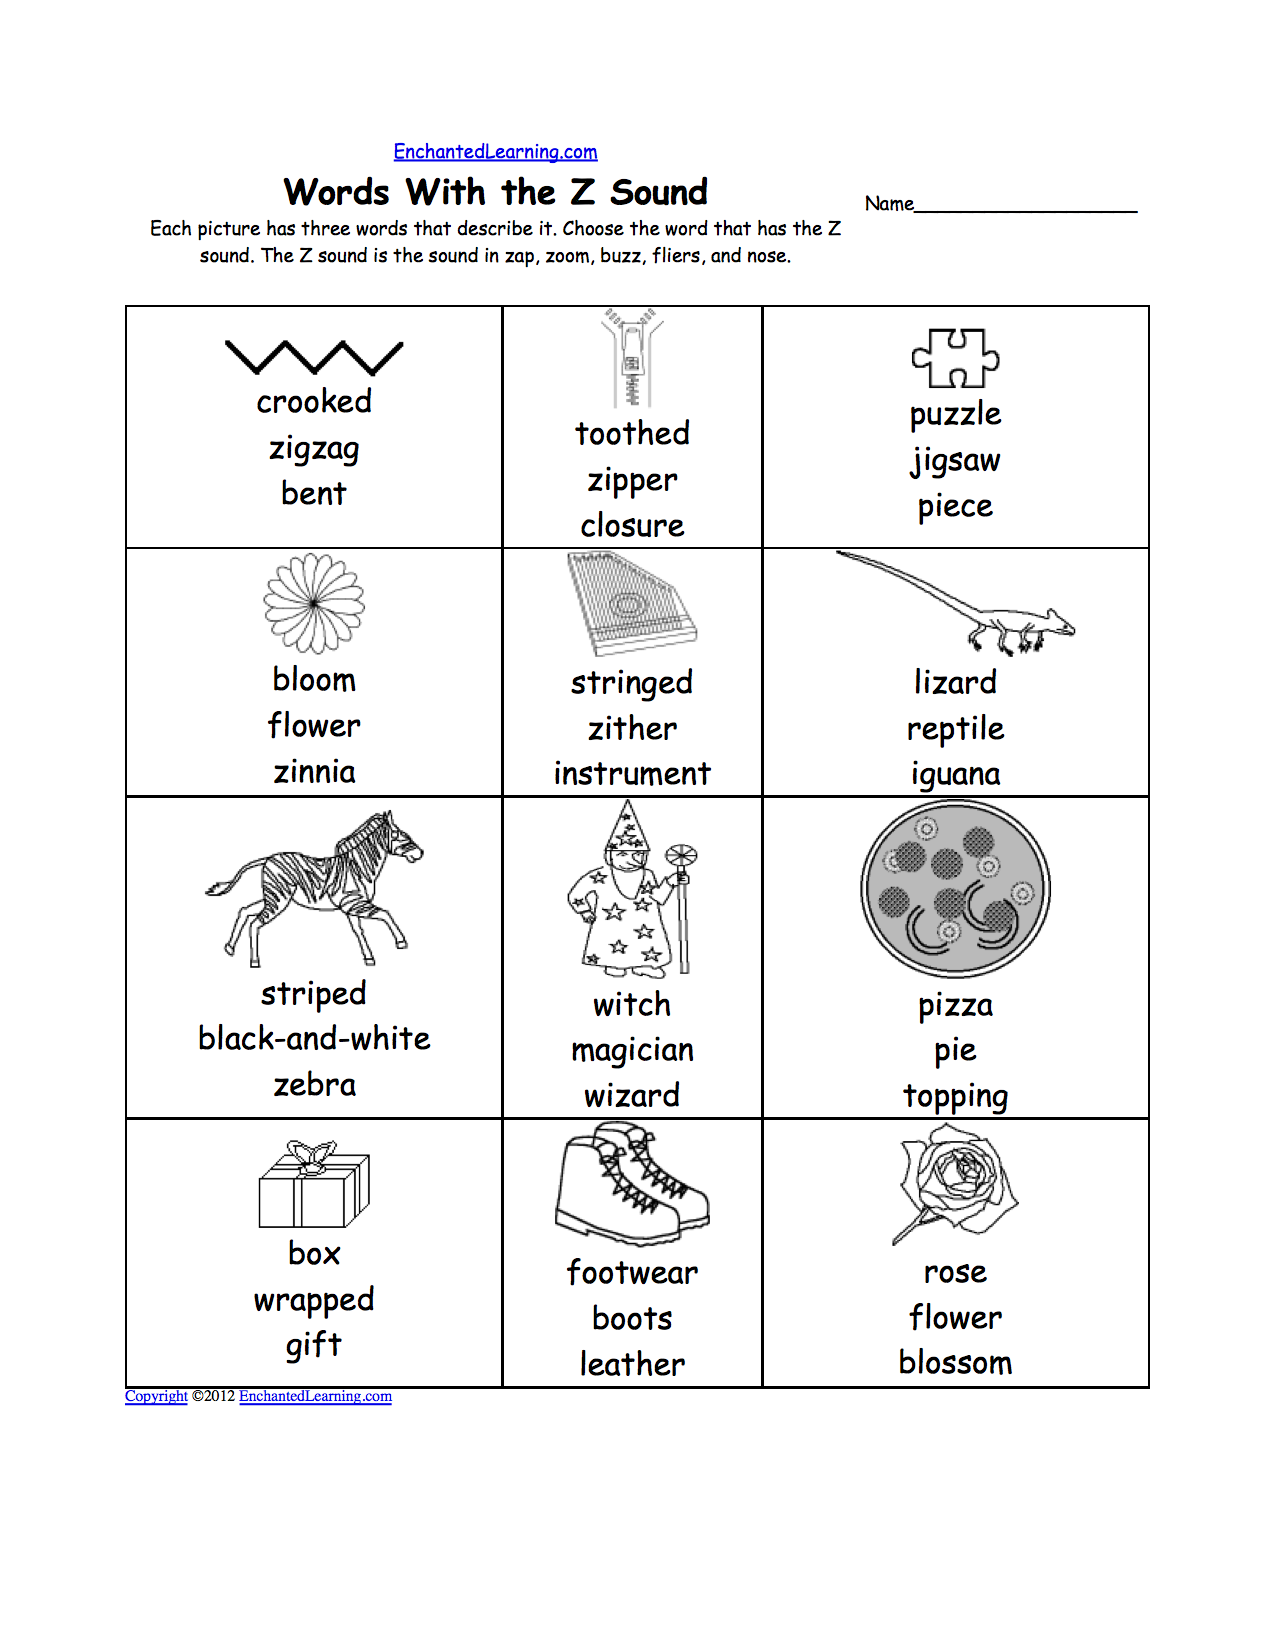 Phonics: Picture Dictionary, Activities and Worksheets to Print -  EnchantedLearning.com